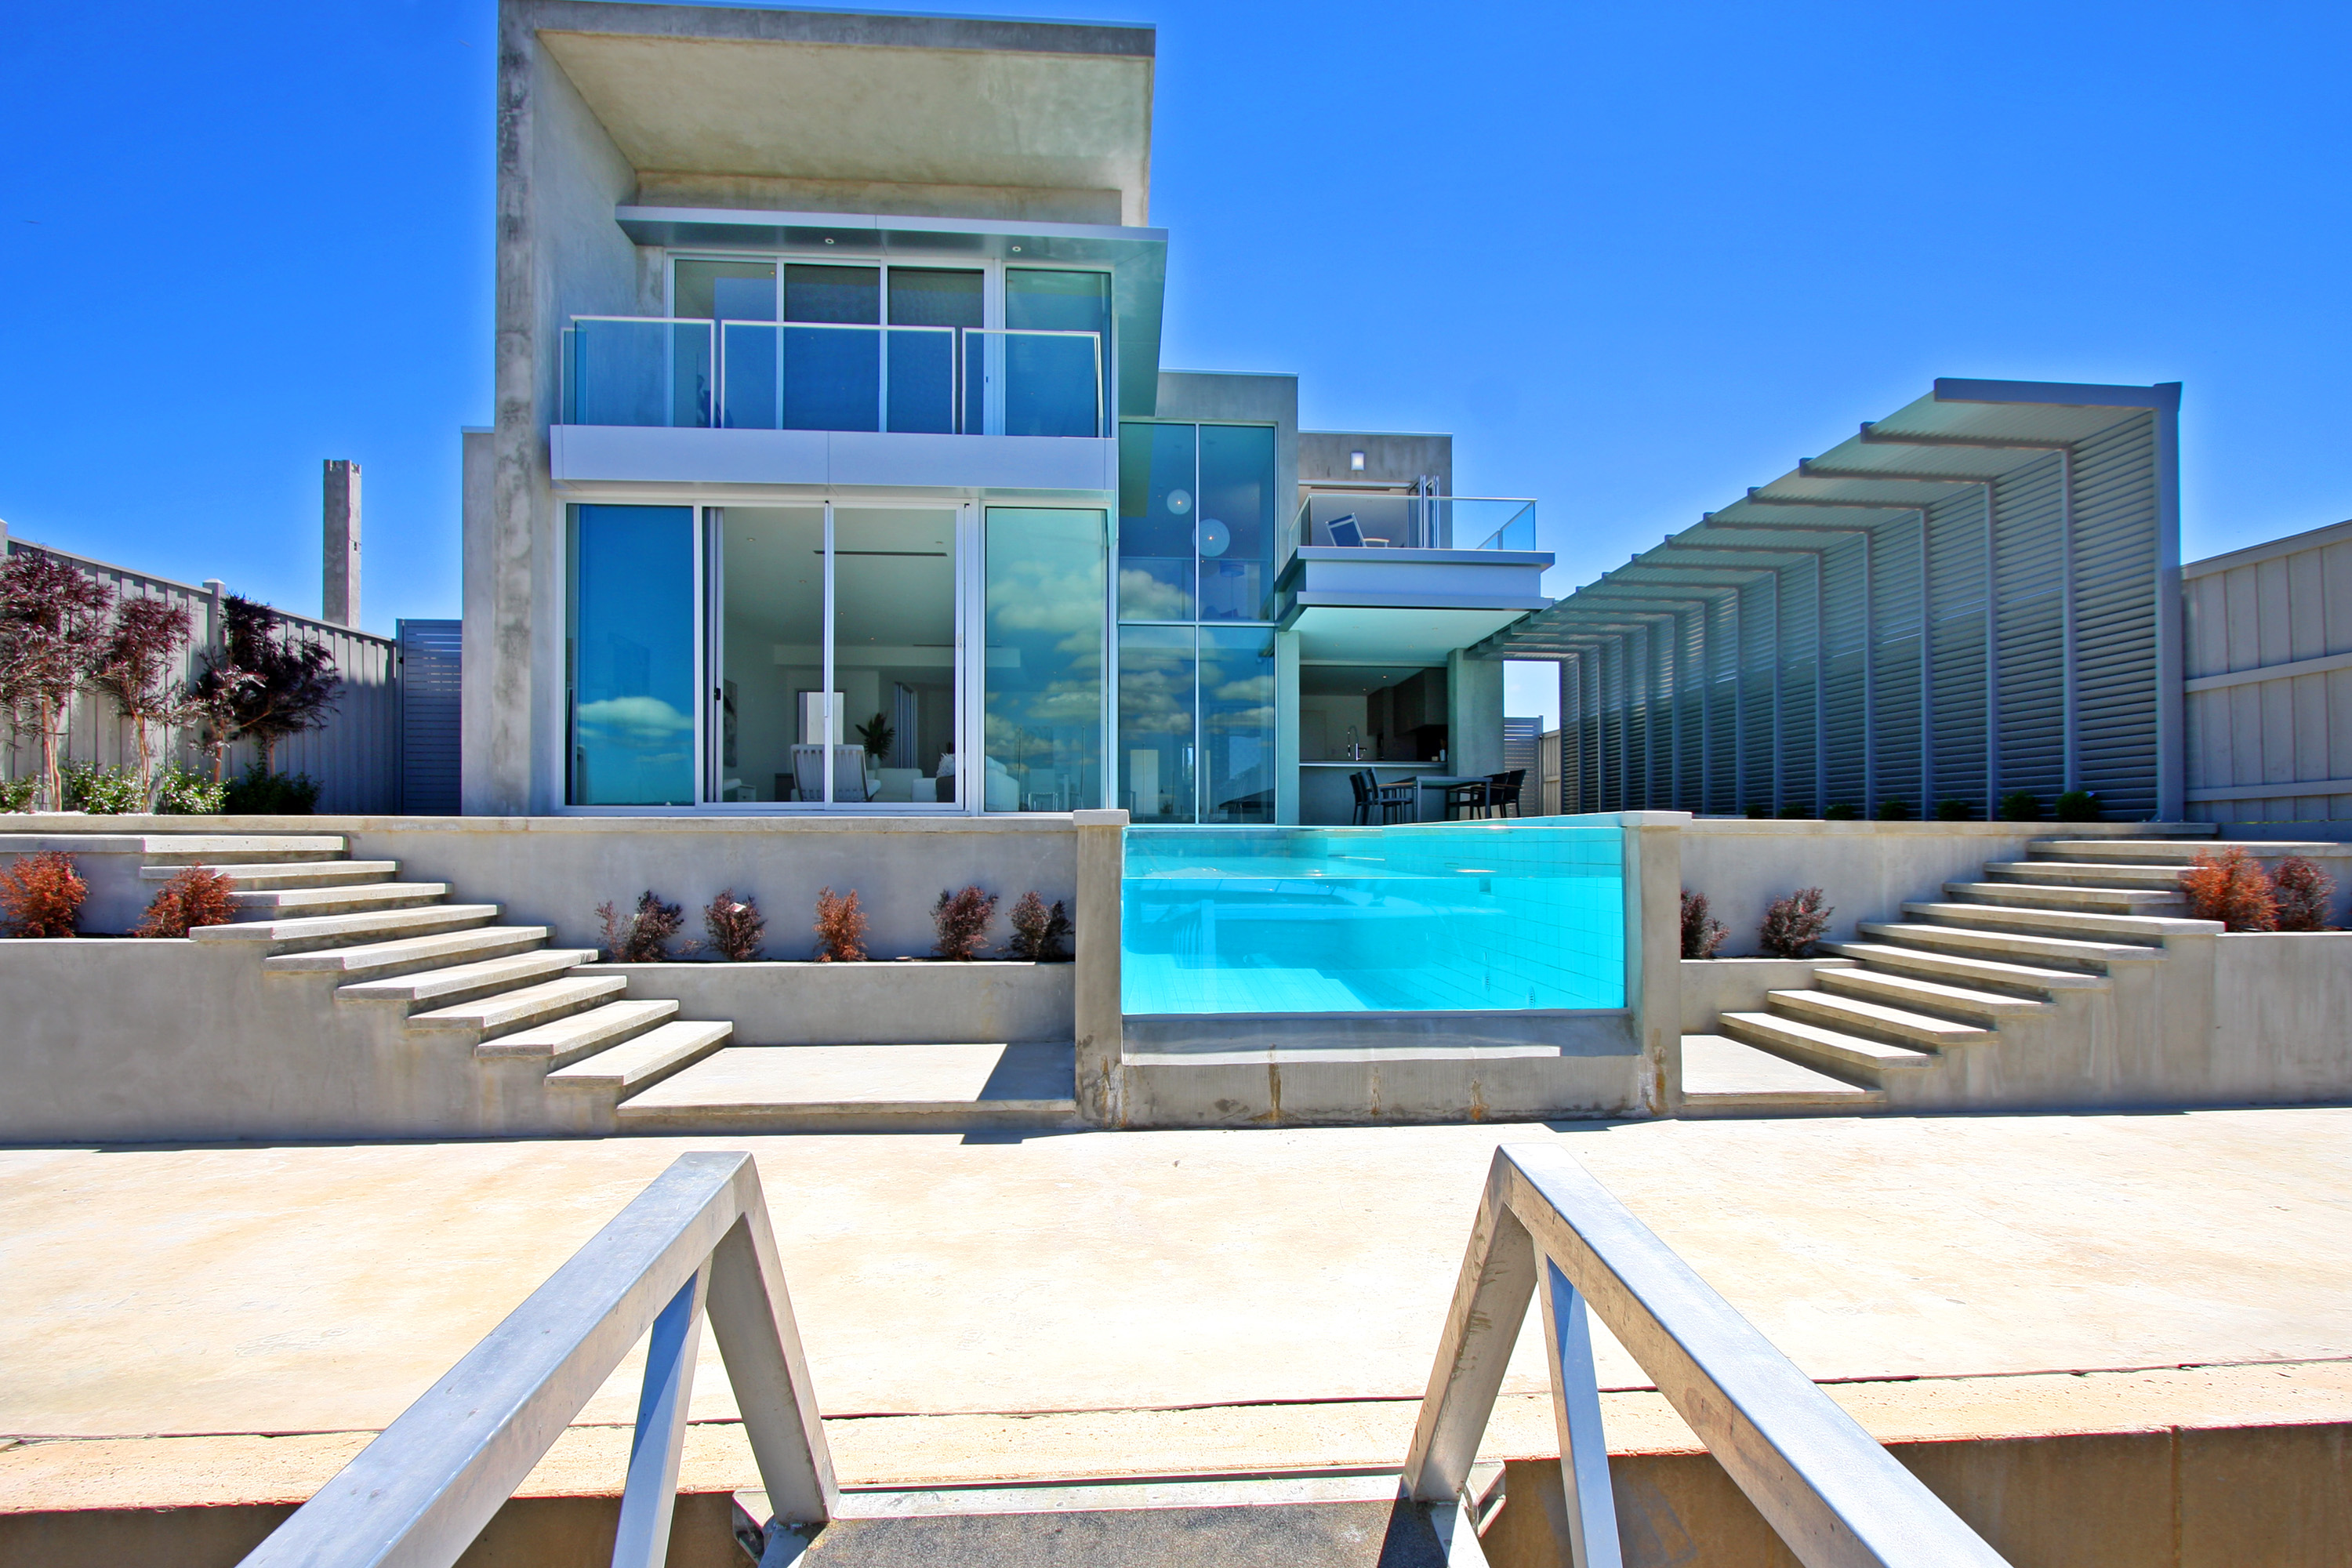 Awesome Beautiful Modern Glass House #2273 Gallery (Photo 5 of 10)